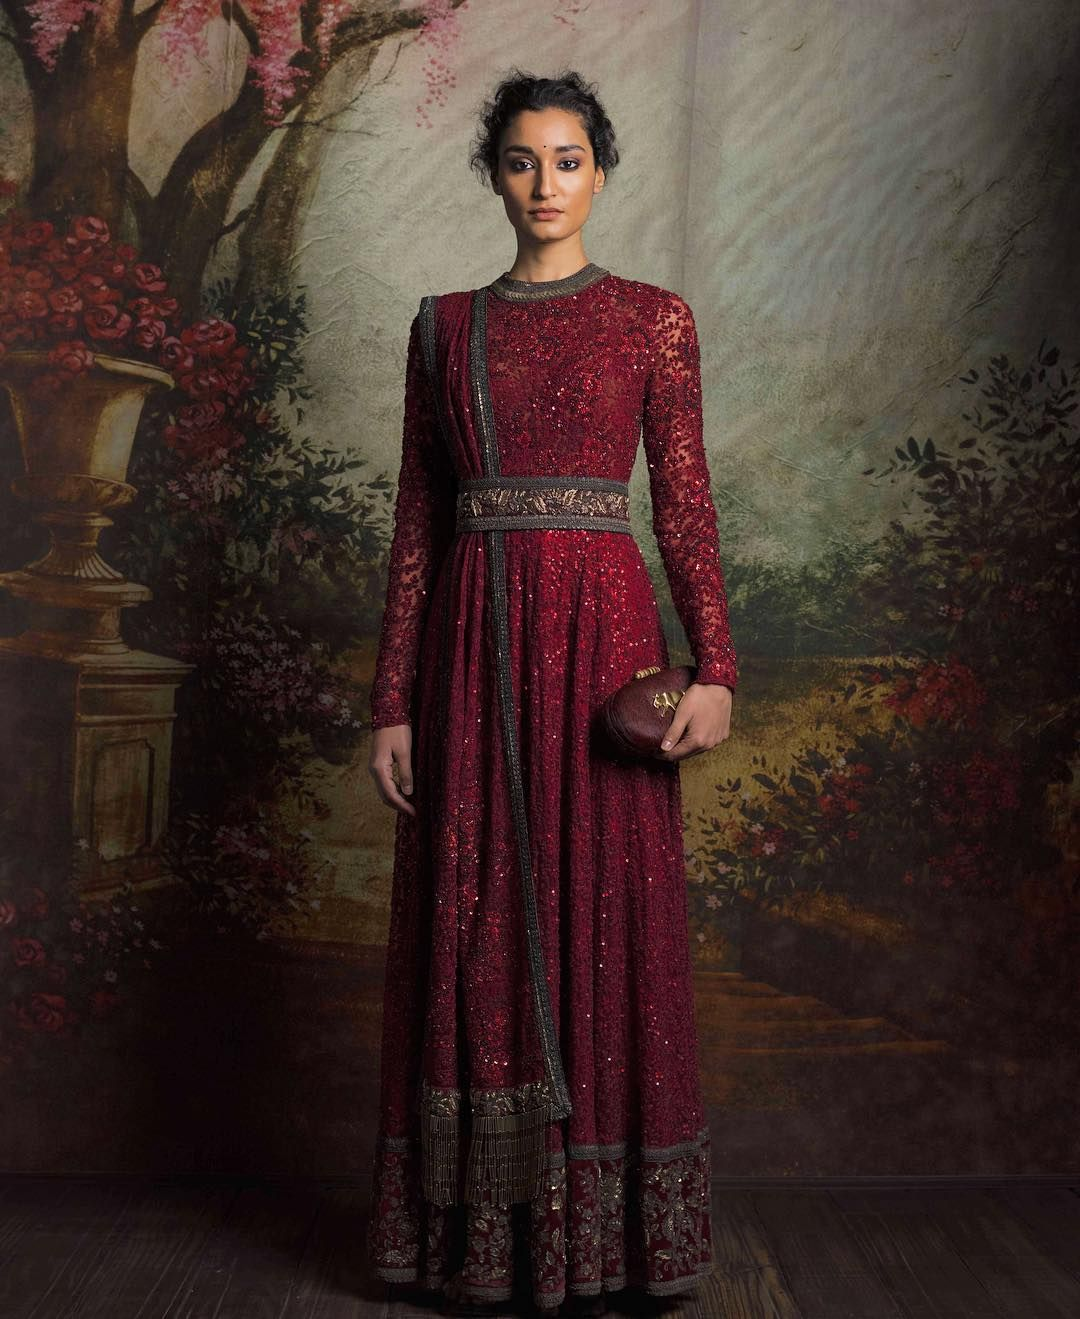 c52cf2db40 Maroon embroidered and sequinned anarkali gown with waist belt - Sabyasachi  2016